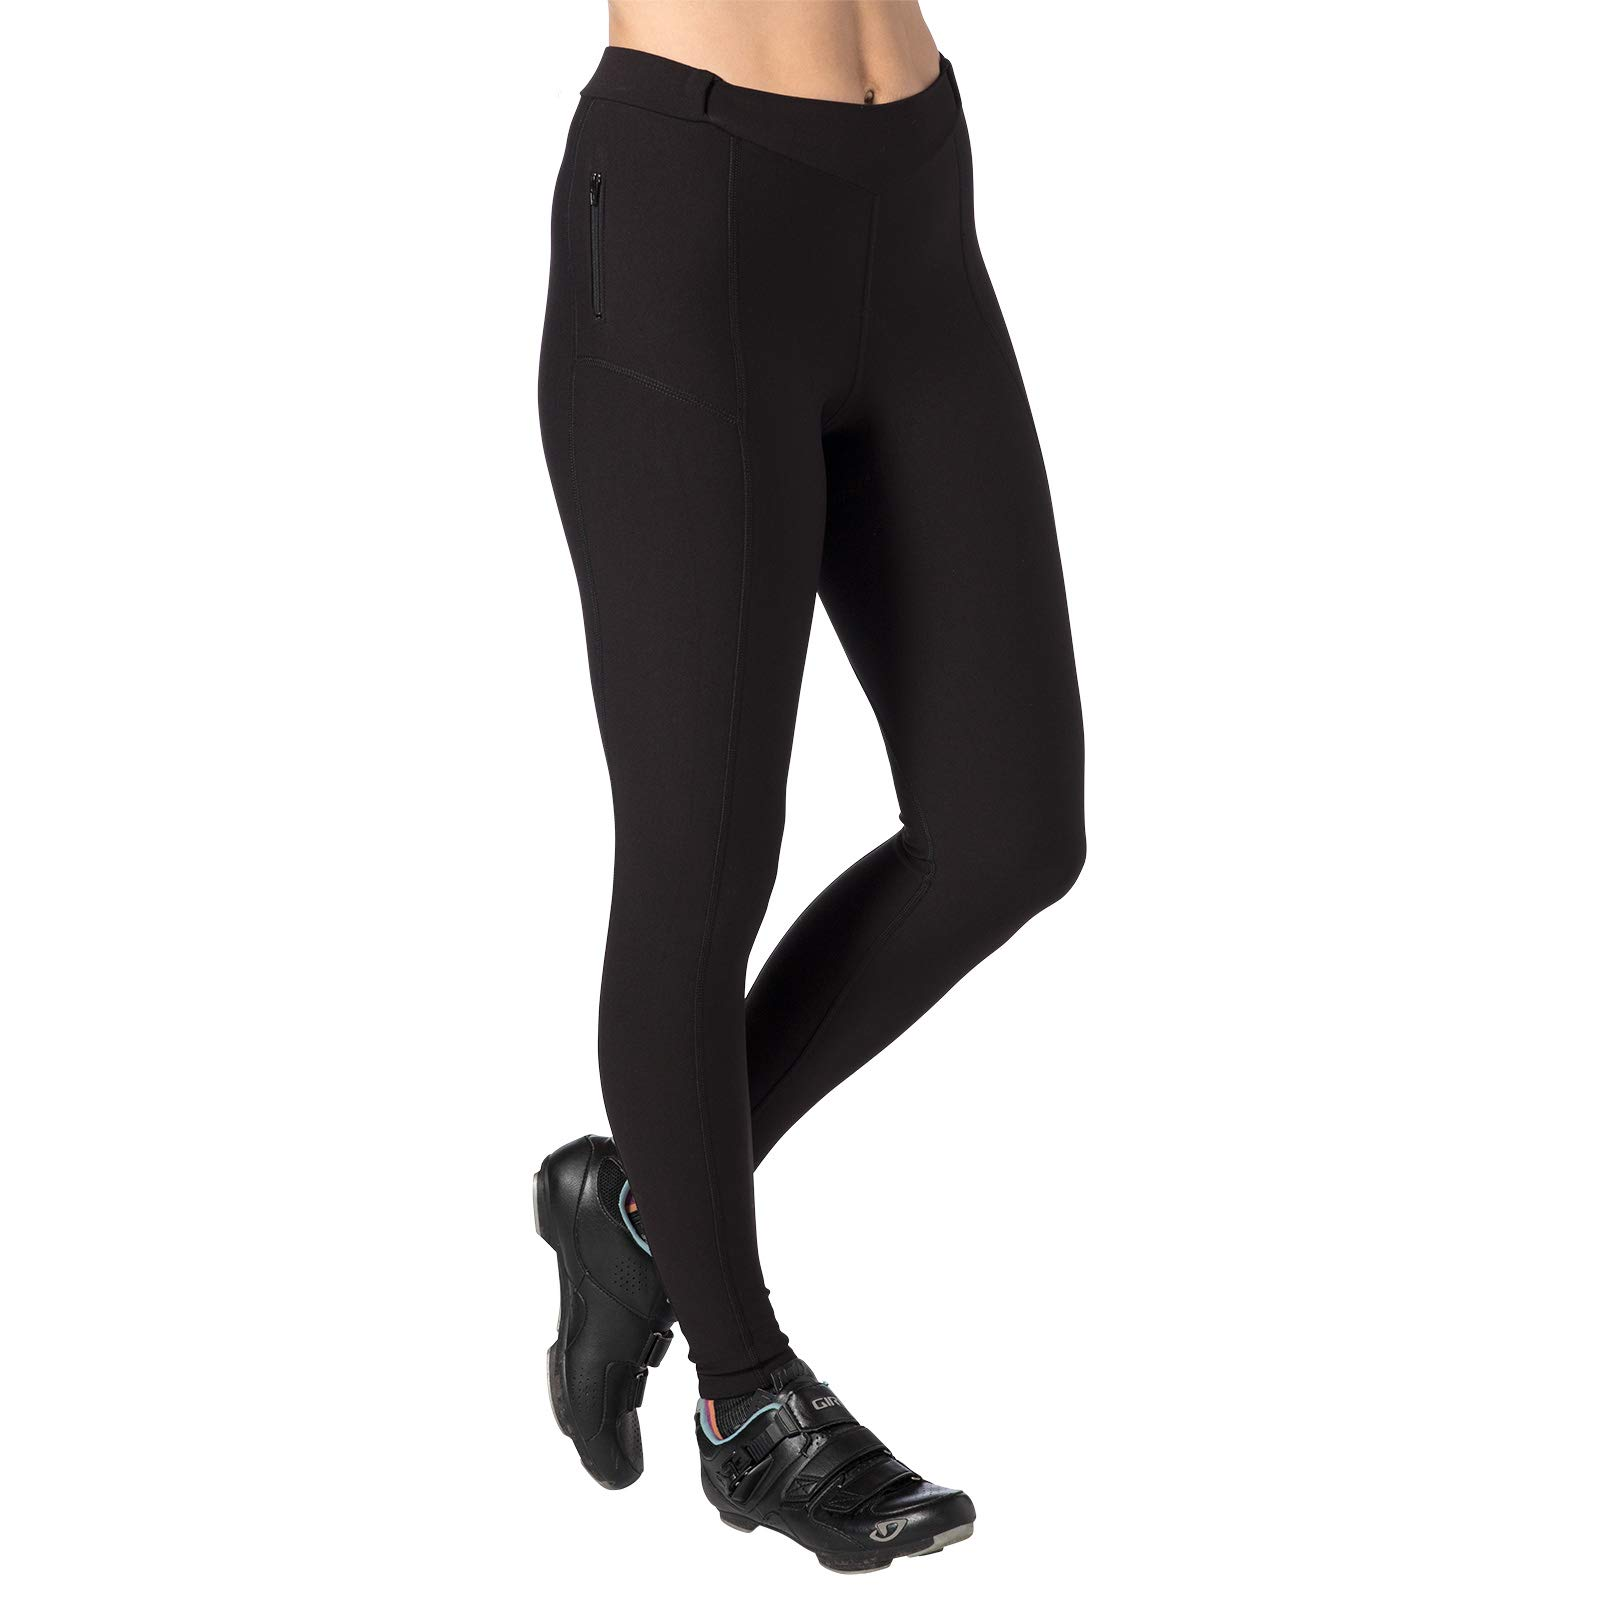 Terry Coolweather Cycling Padded Tights for Women - Regular - 29 inch Inseam Pants - Black - X Small by Terry